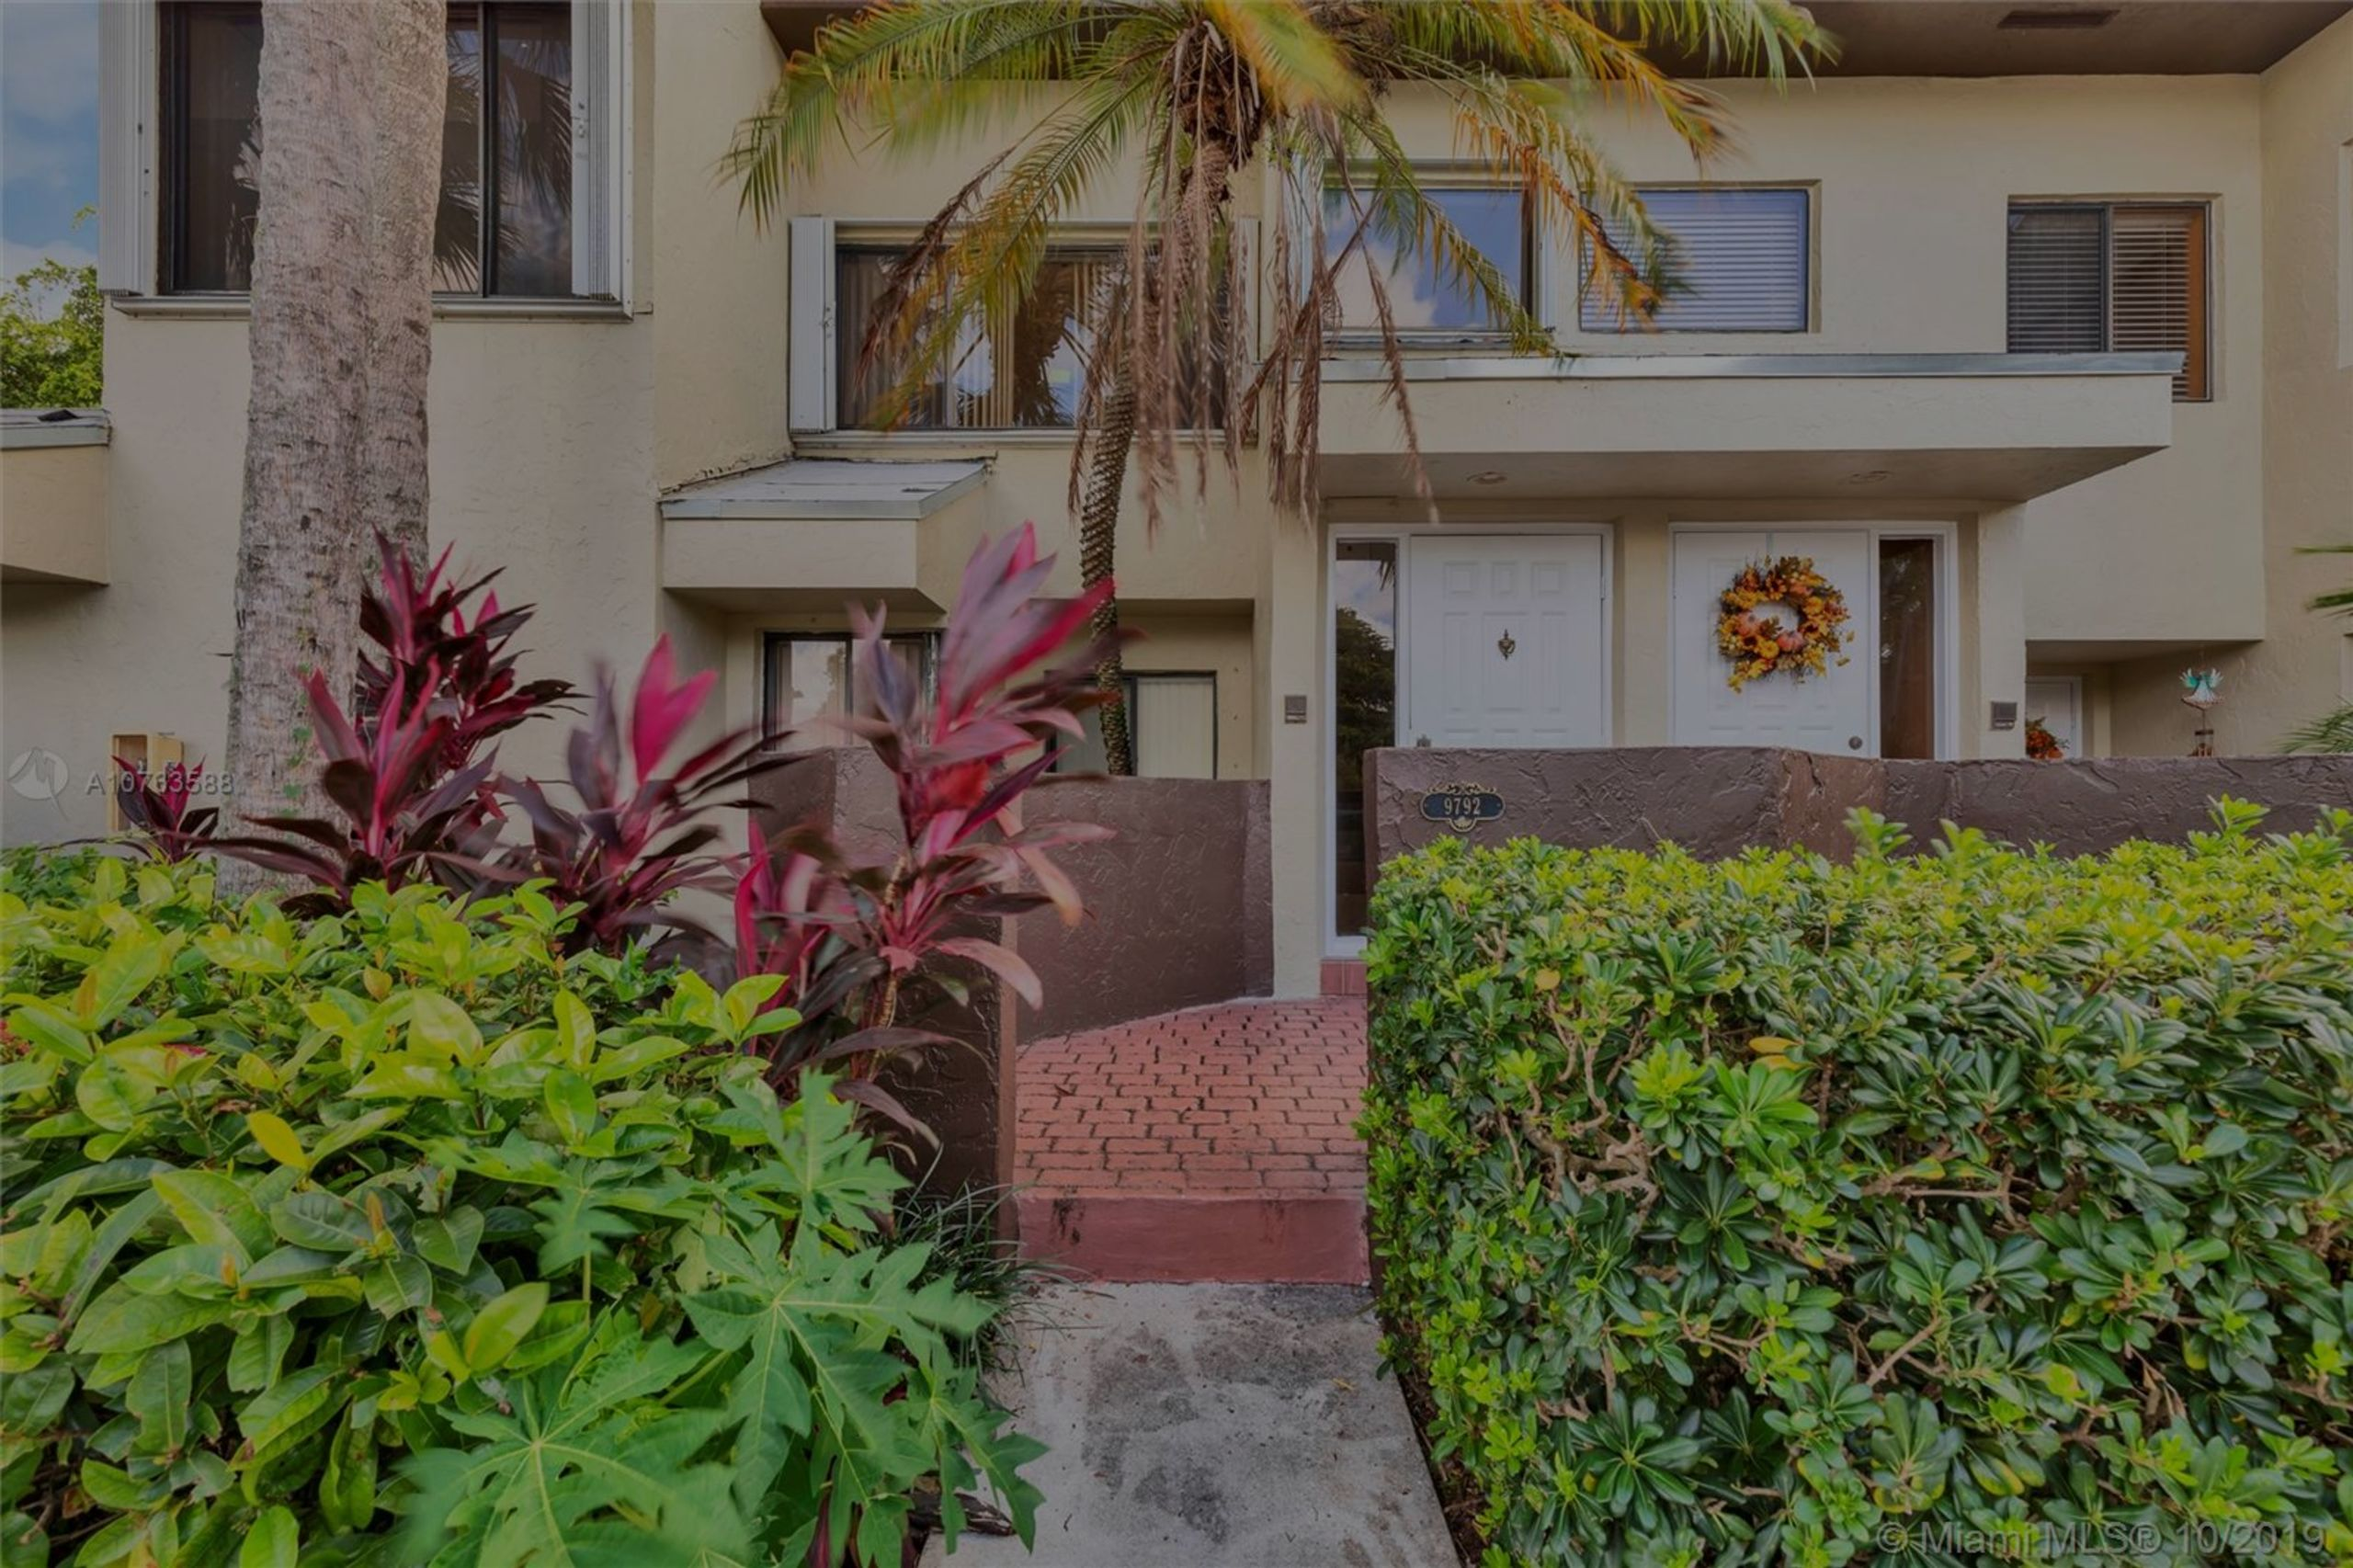 Enjoy the Miami lifestyle in this fabulous 1 bedroom, 1 bath condo in Kendall!